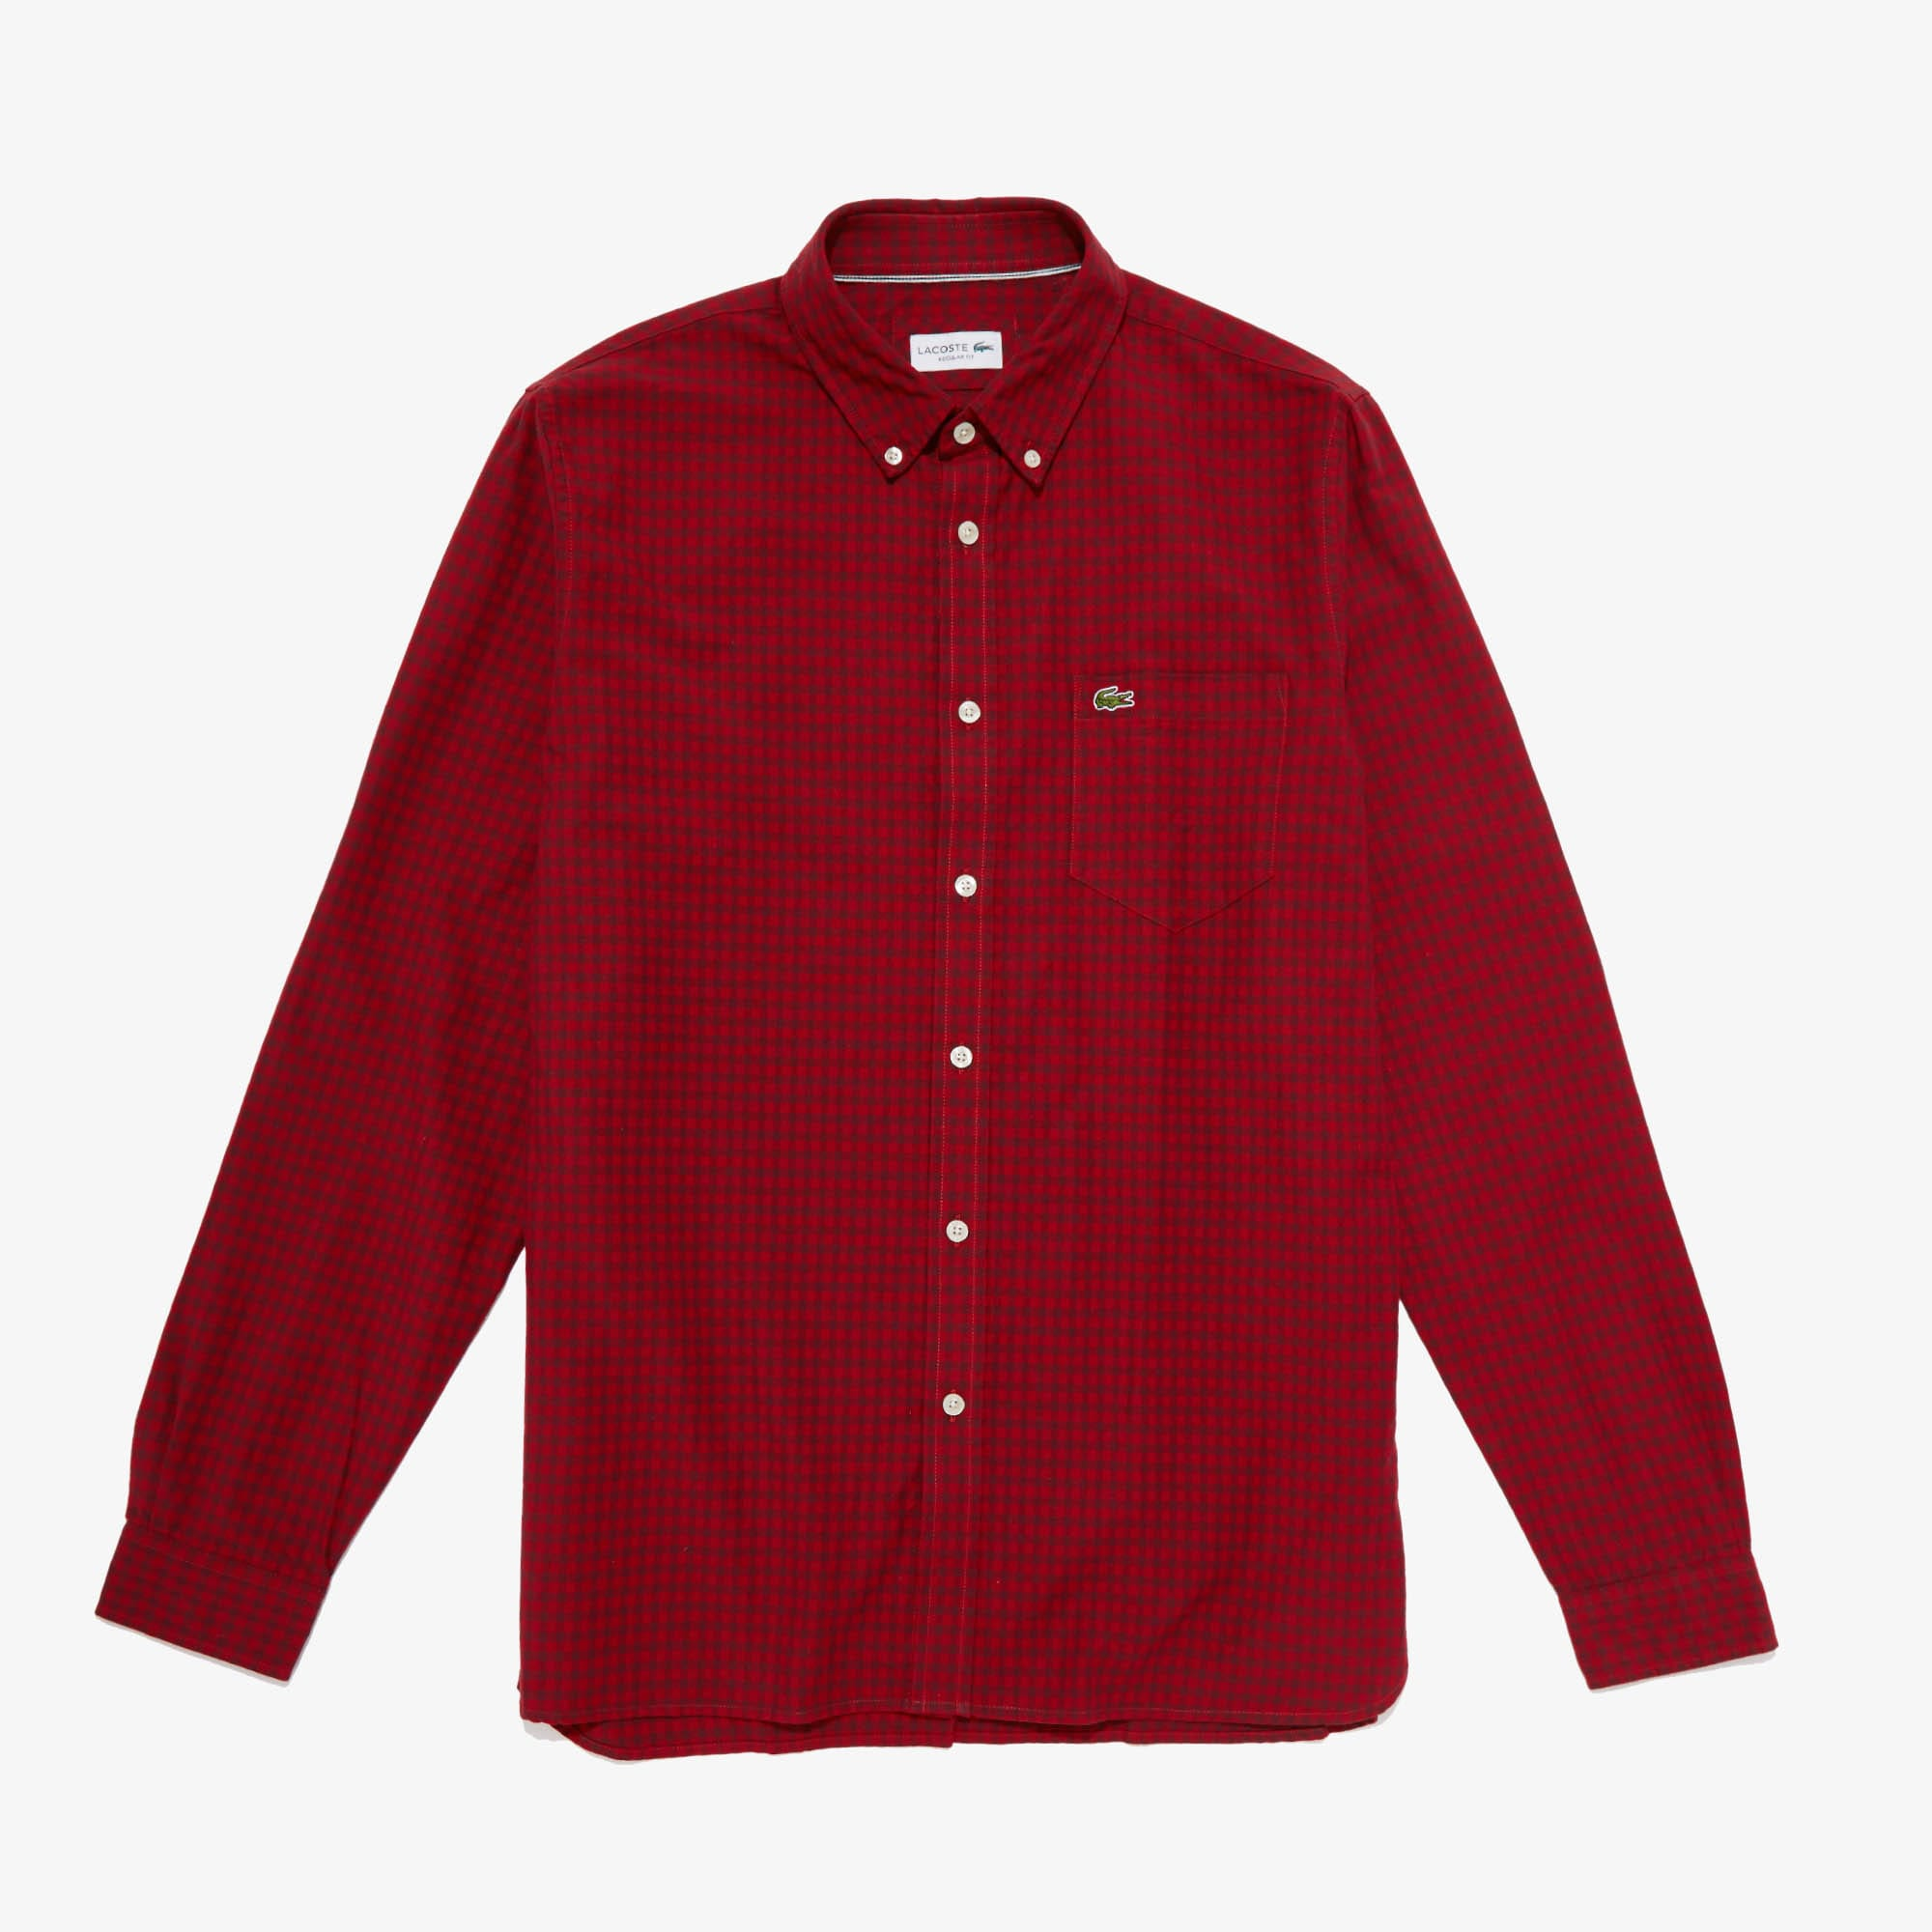 Lacoste Tops Men's Regular Fit Cotton Shirt